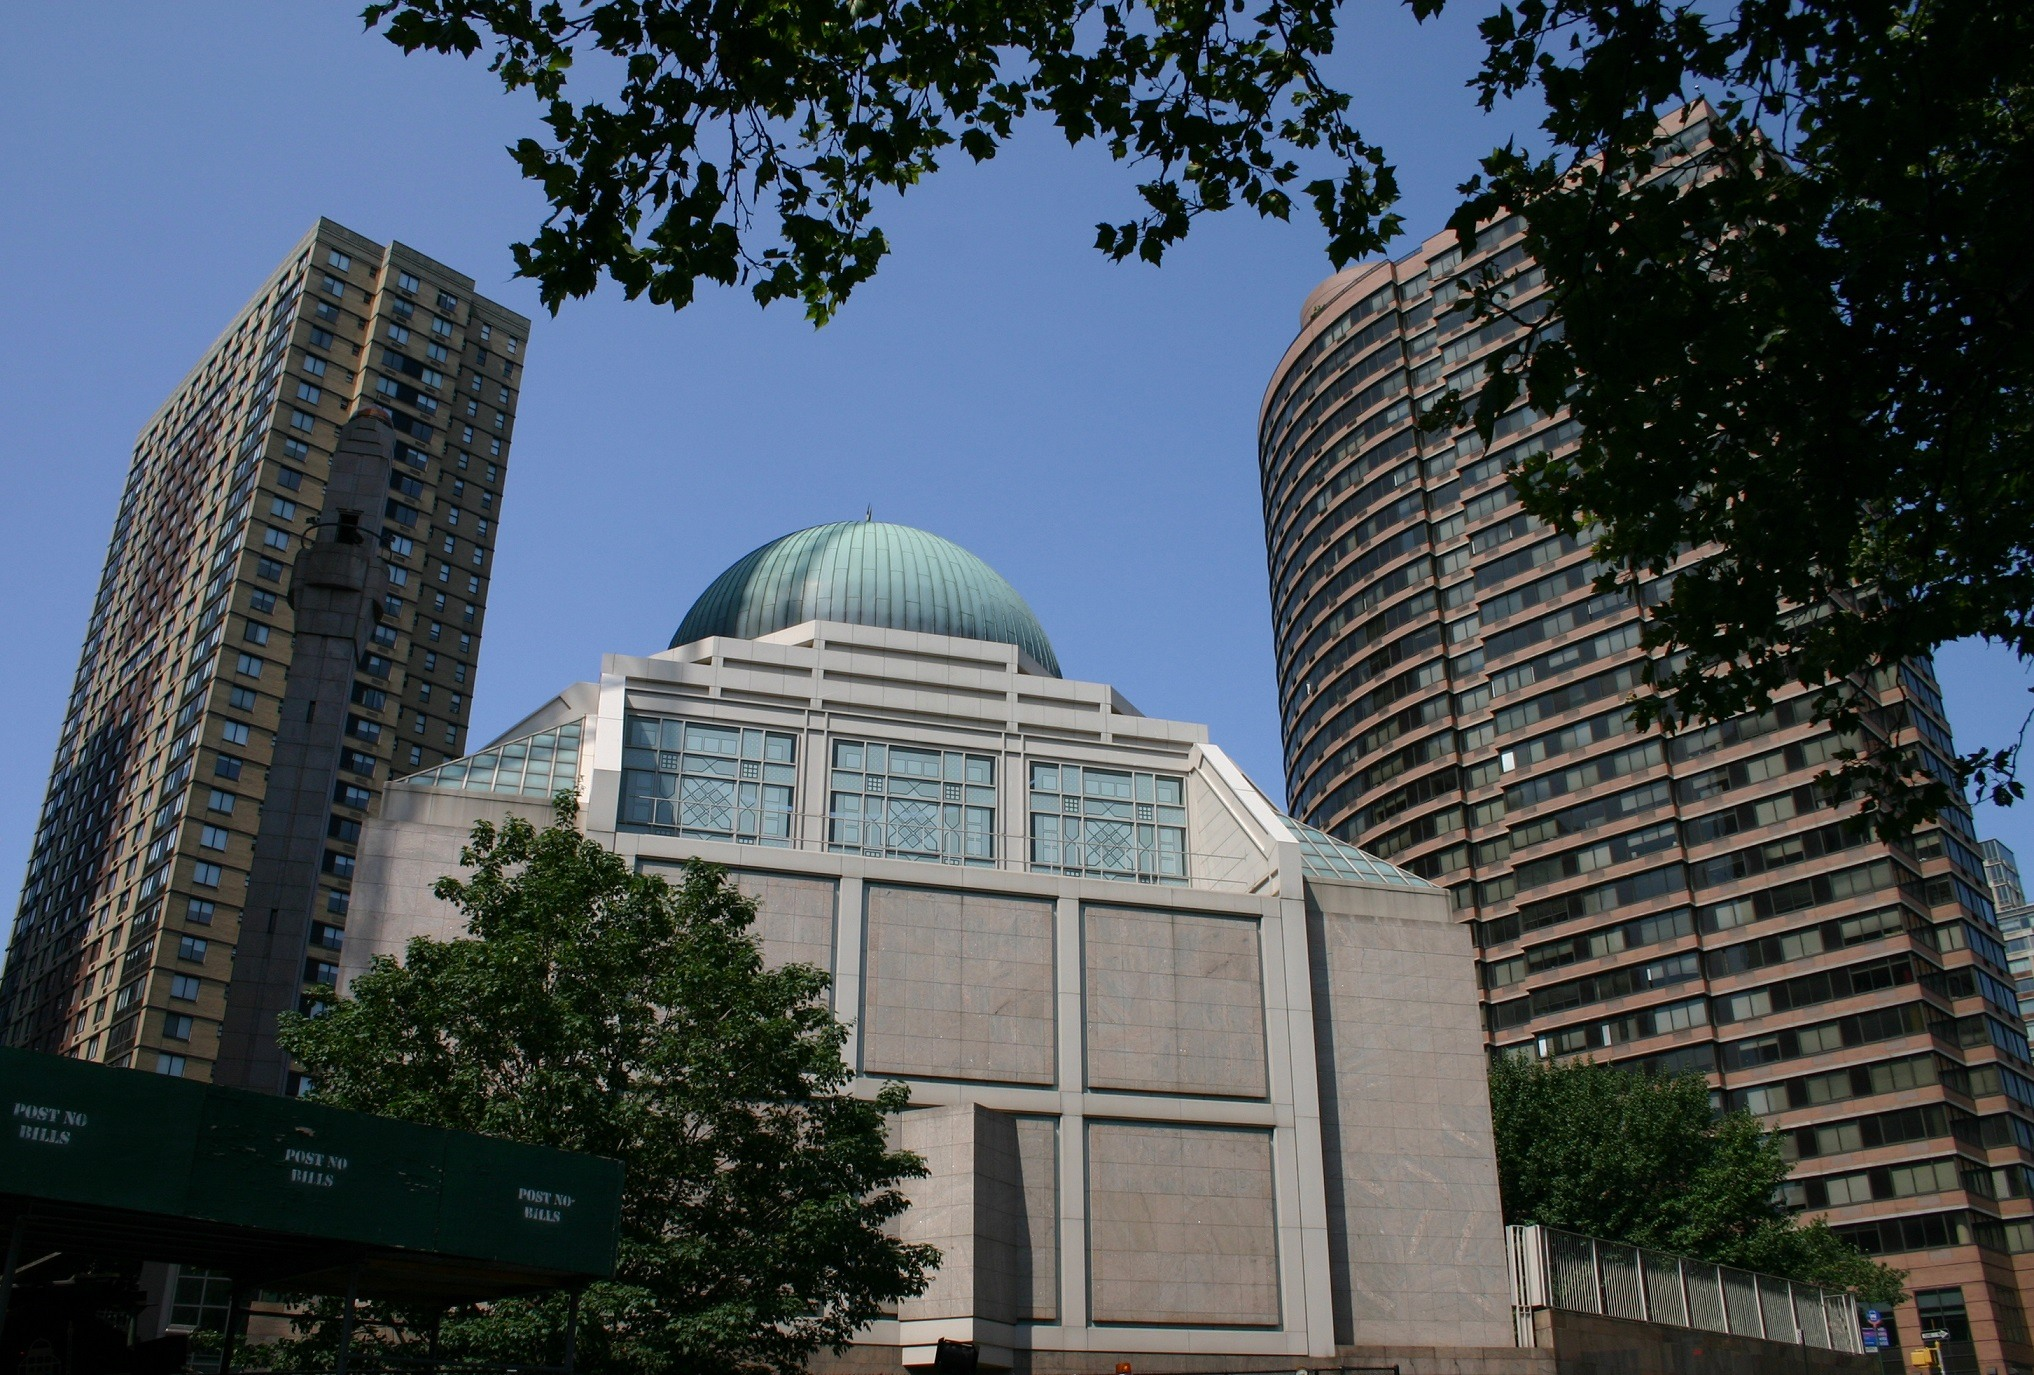 Islamic Cultural Center and Mosque, New York City